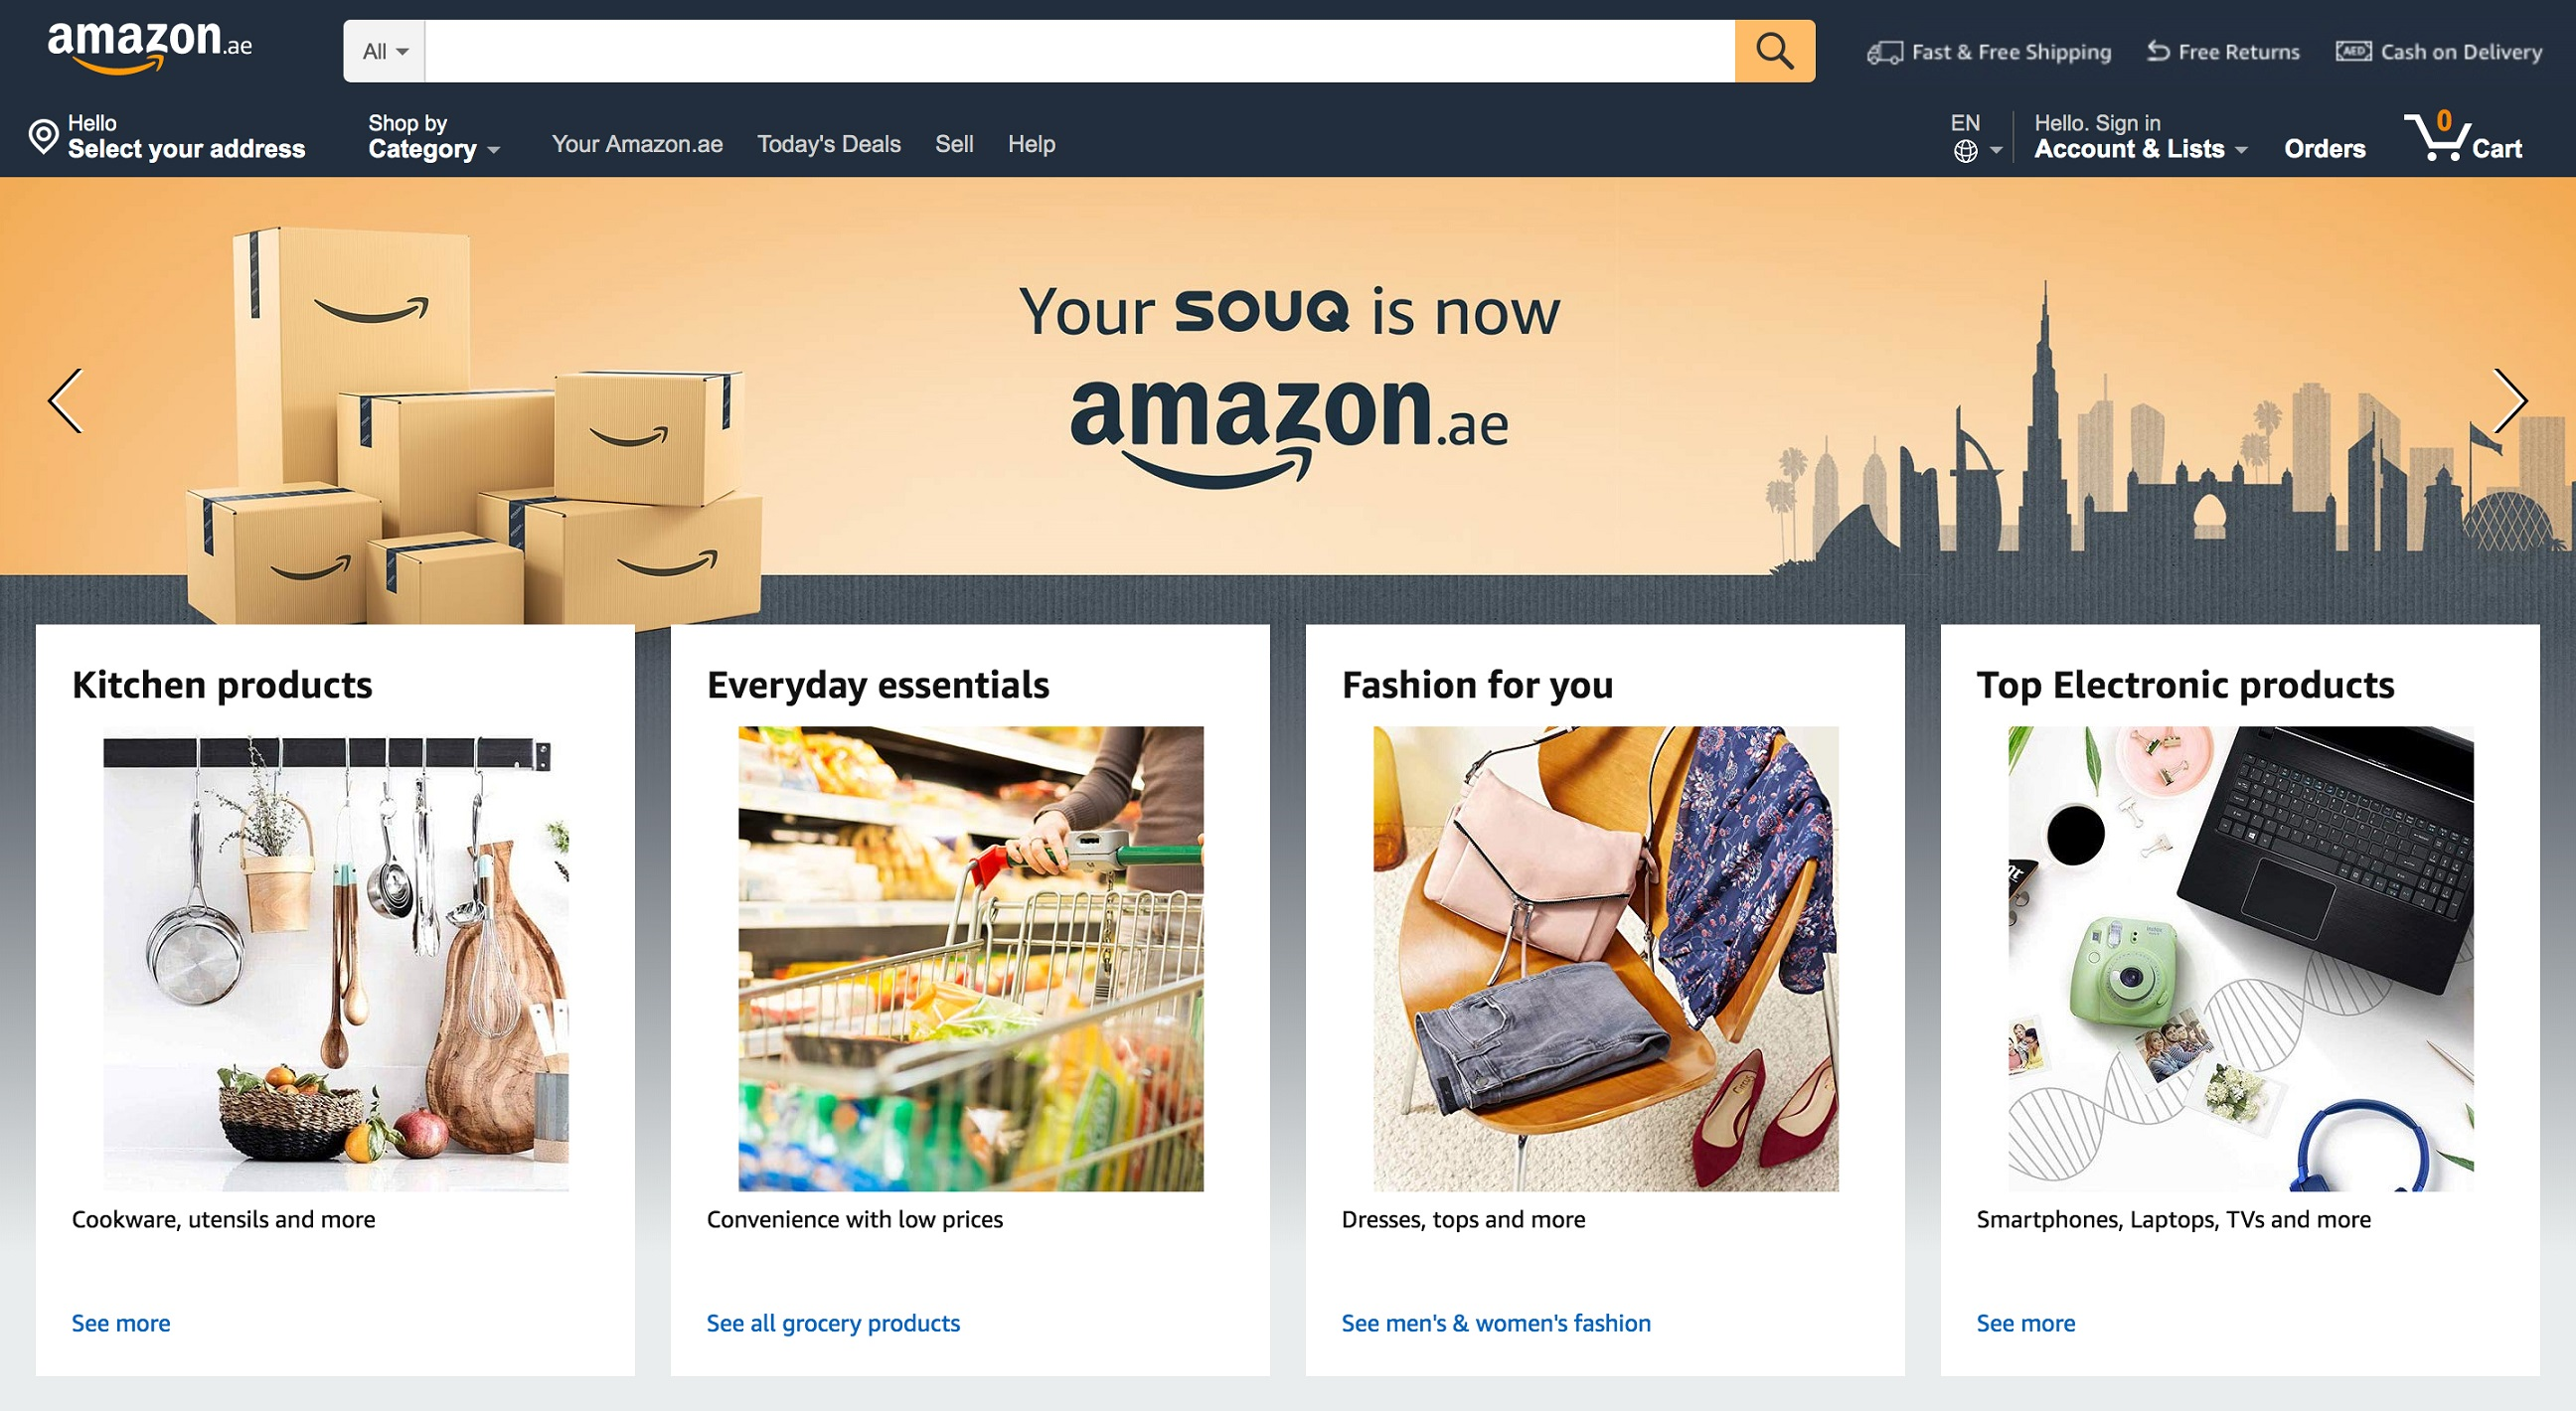 Goodbye Souq.com, hello Amazon.ae